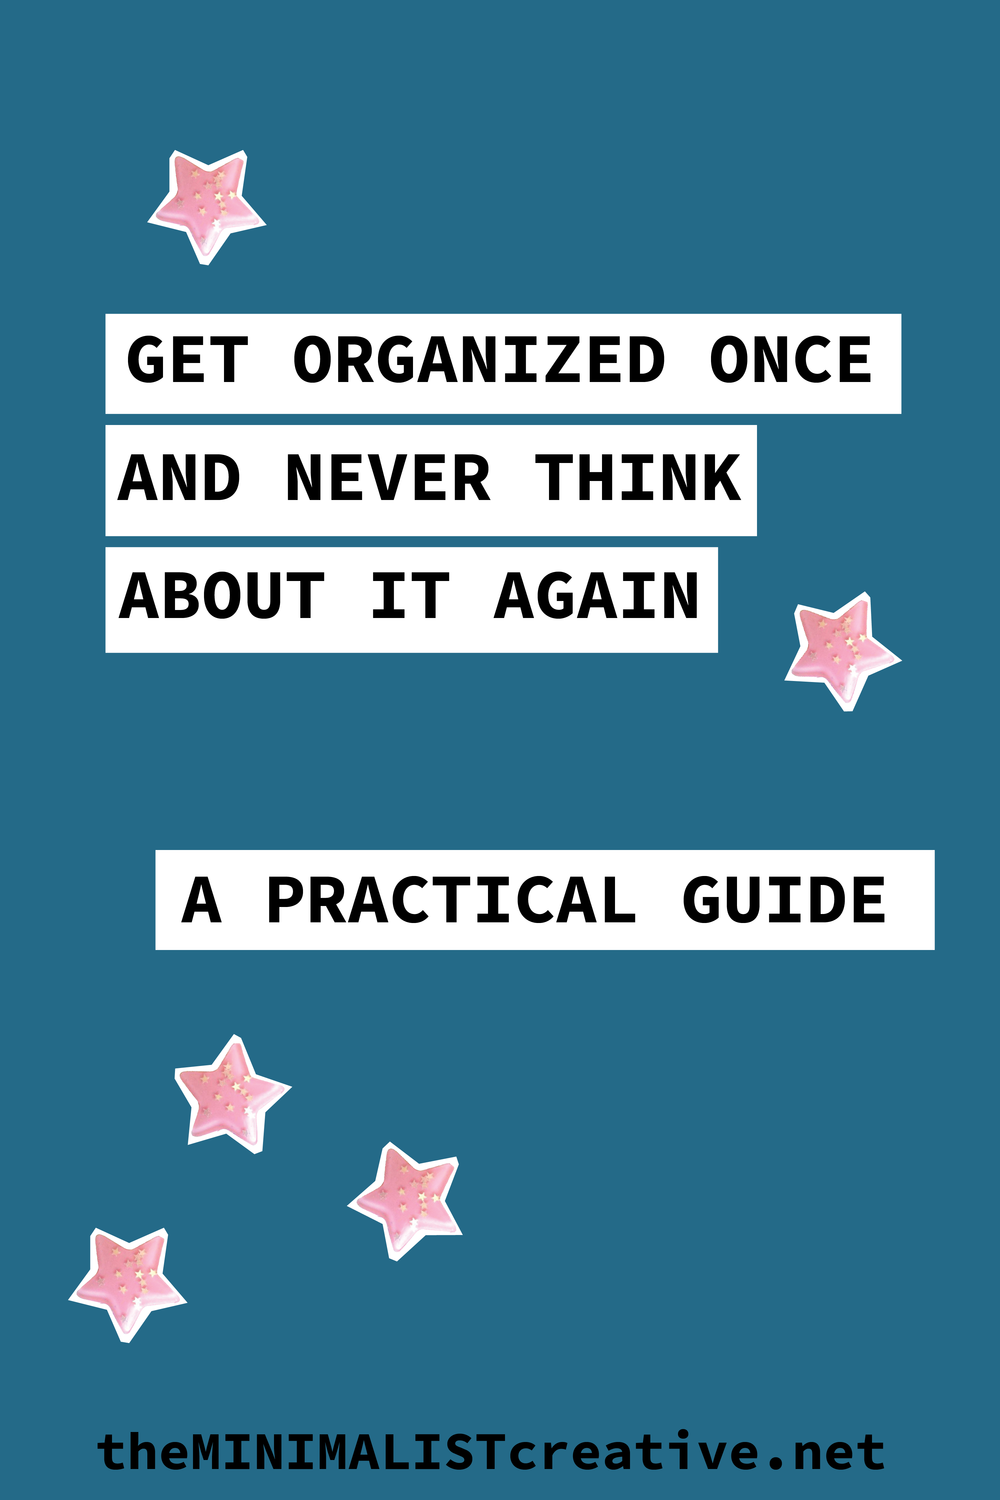 How To Get Organized Once And Never Think About It Again